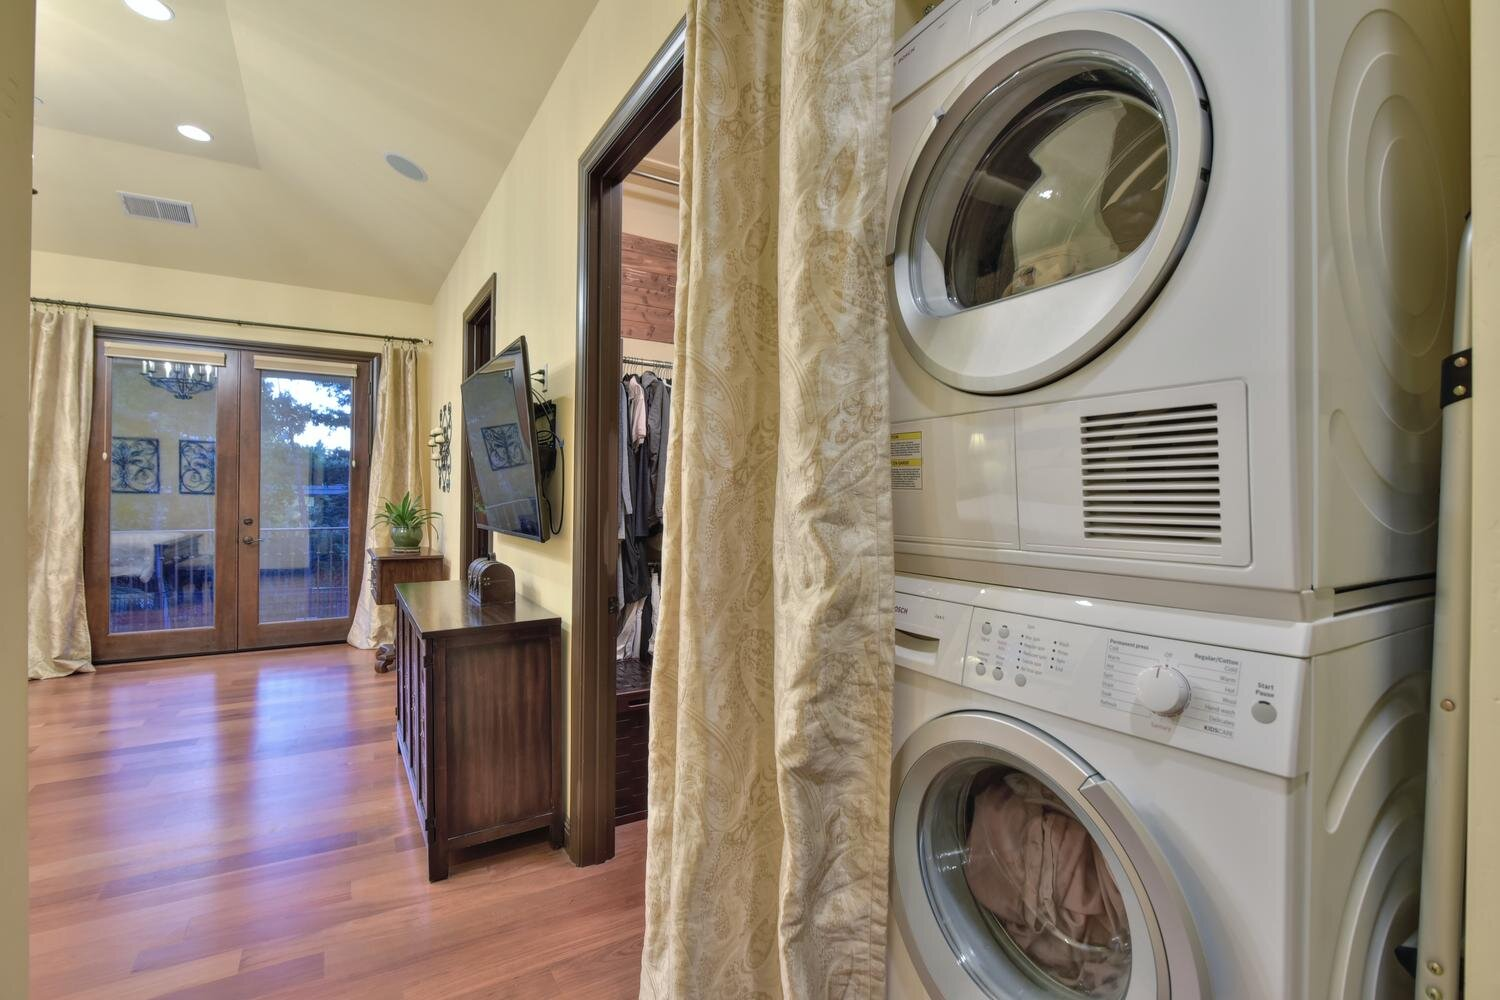 16021 Winterbrook Rd Los Gatos-large-036-018-Laundry Area in Master Bedroom-1500x1000-72dpi.jpg